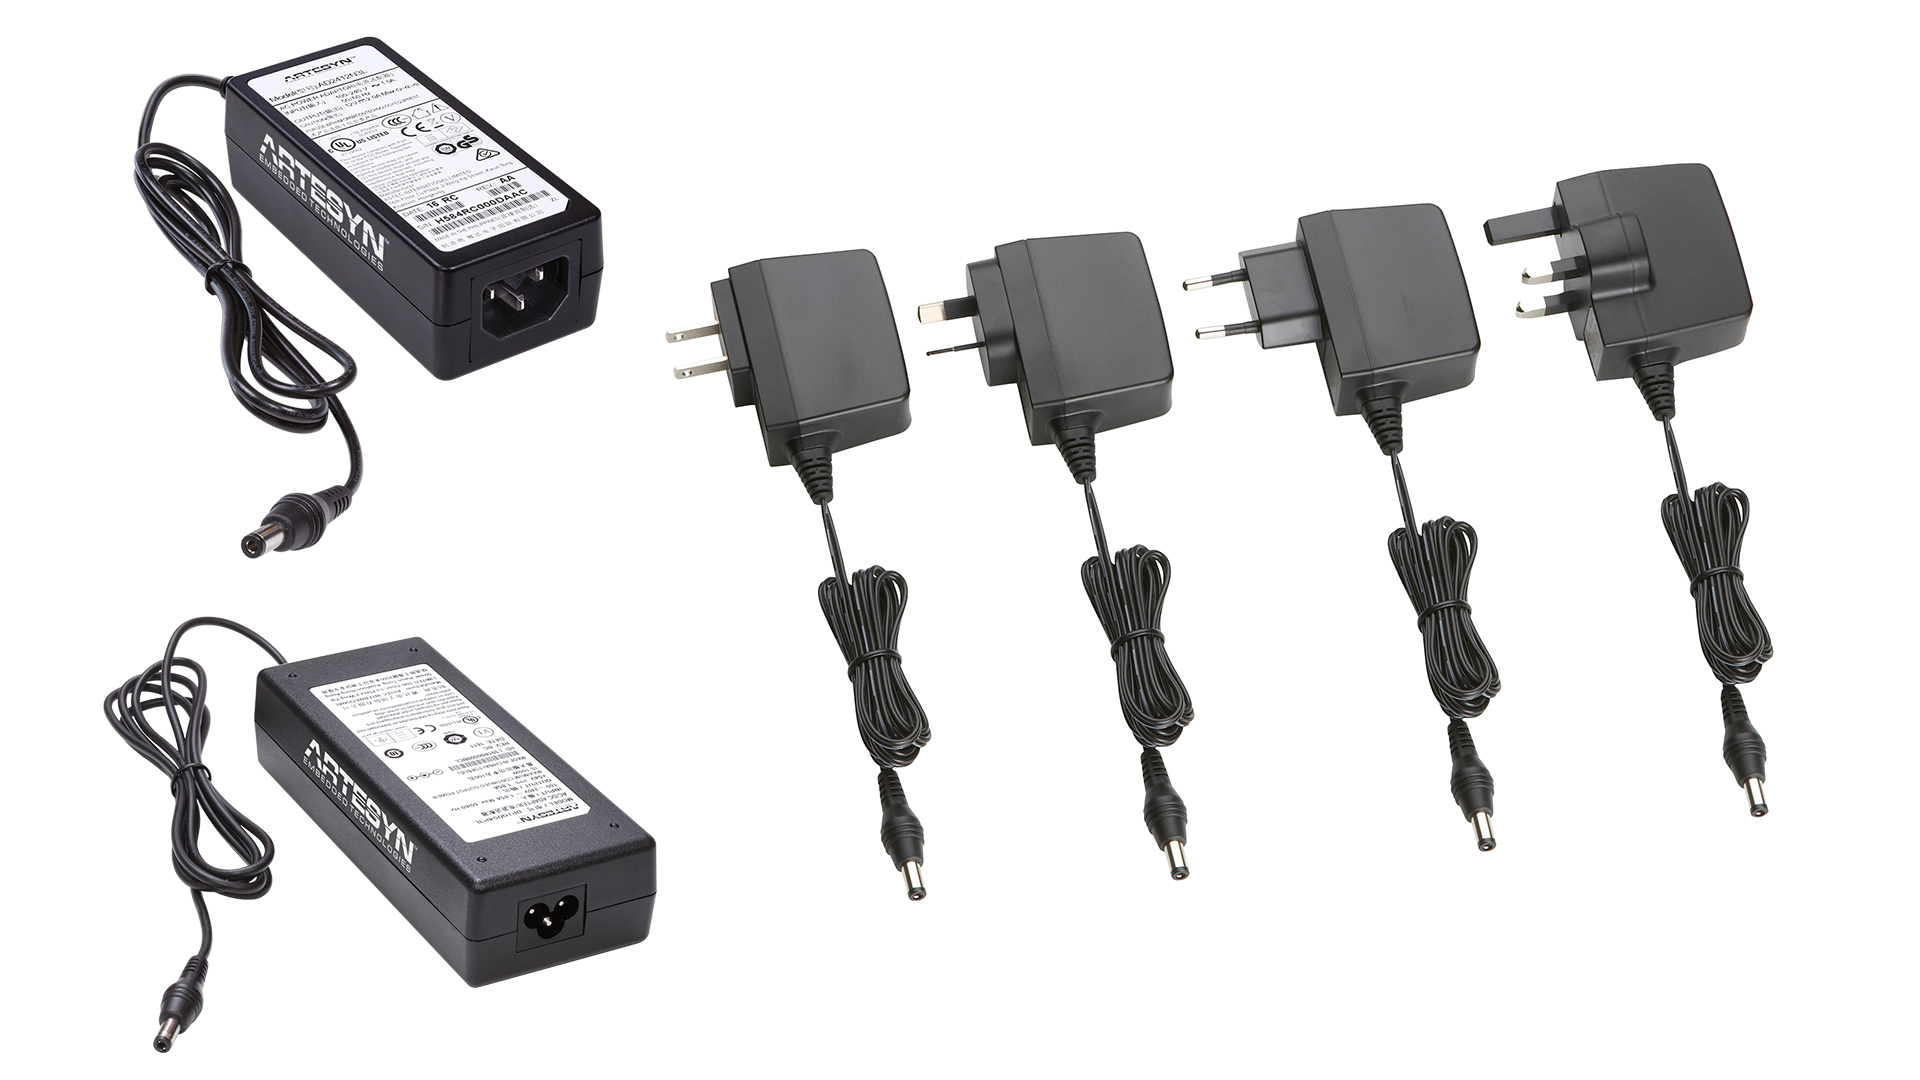 External Power Adapters Enable OEMs to Meet Efficiency Standards